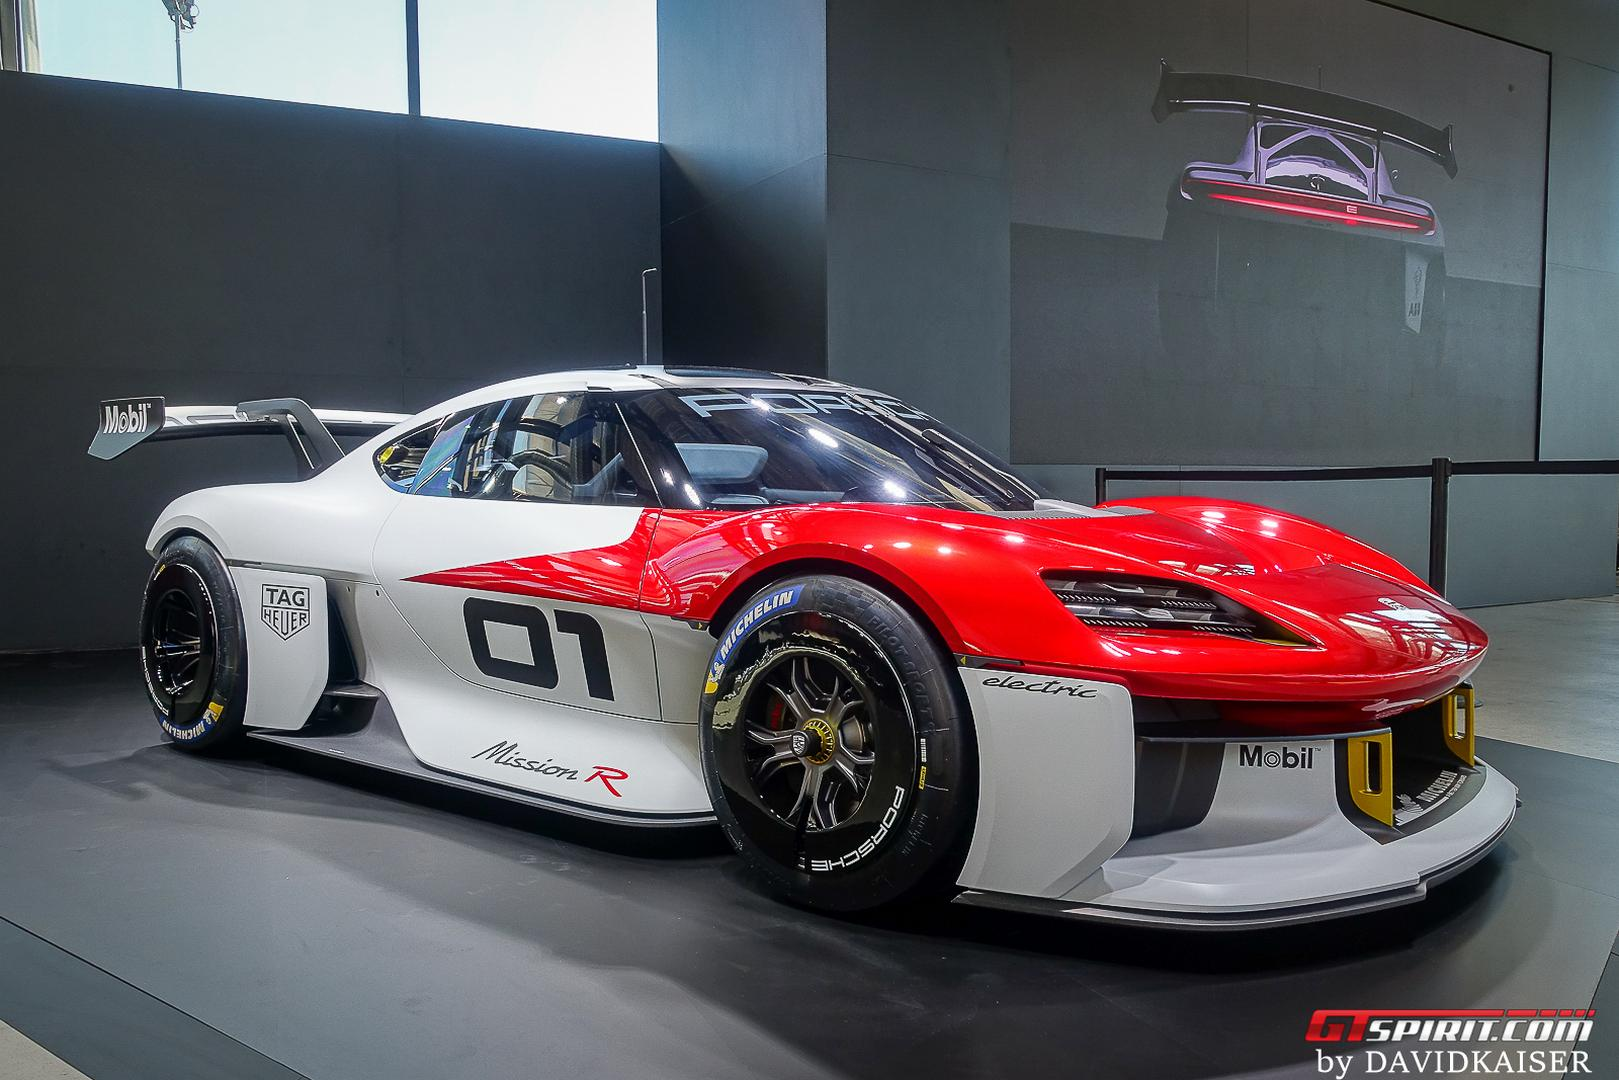 Porsche Mission R: The Future of Porsche GT Cars, Electric with 1000hp+